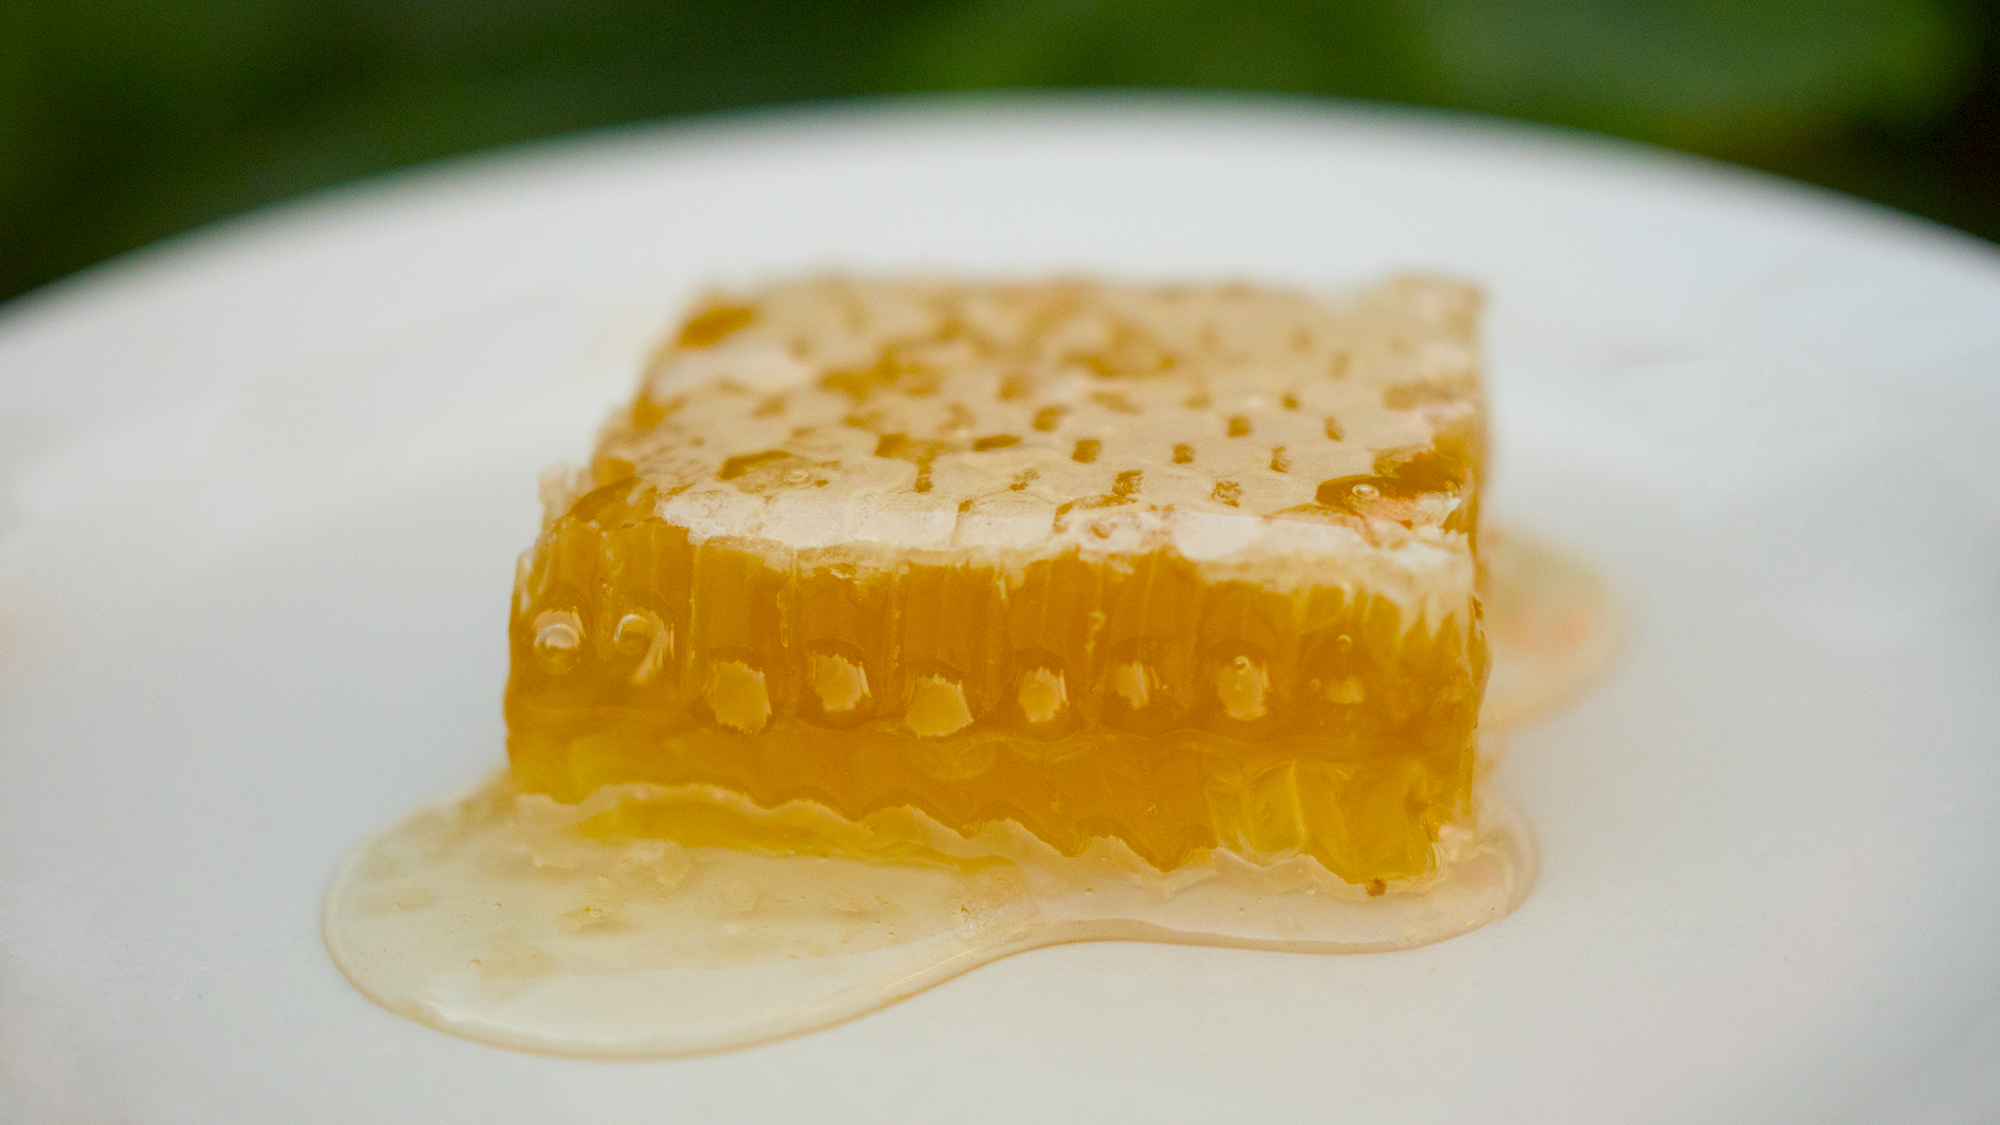 honey comb on a plate